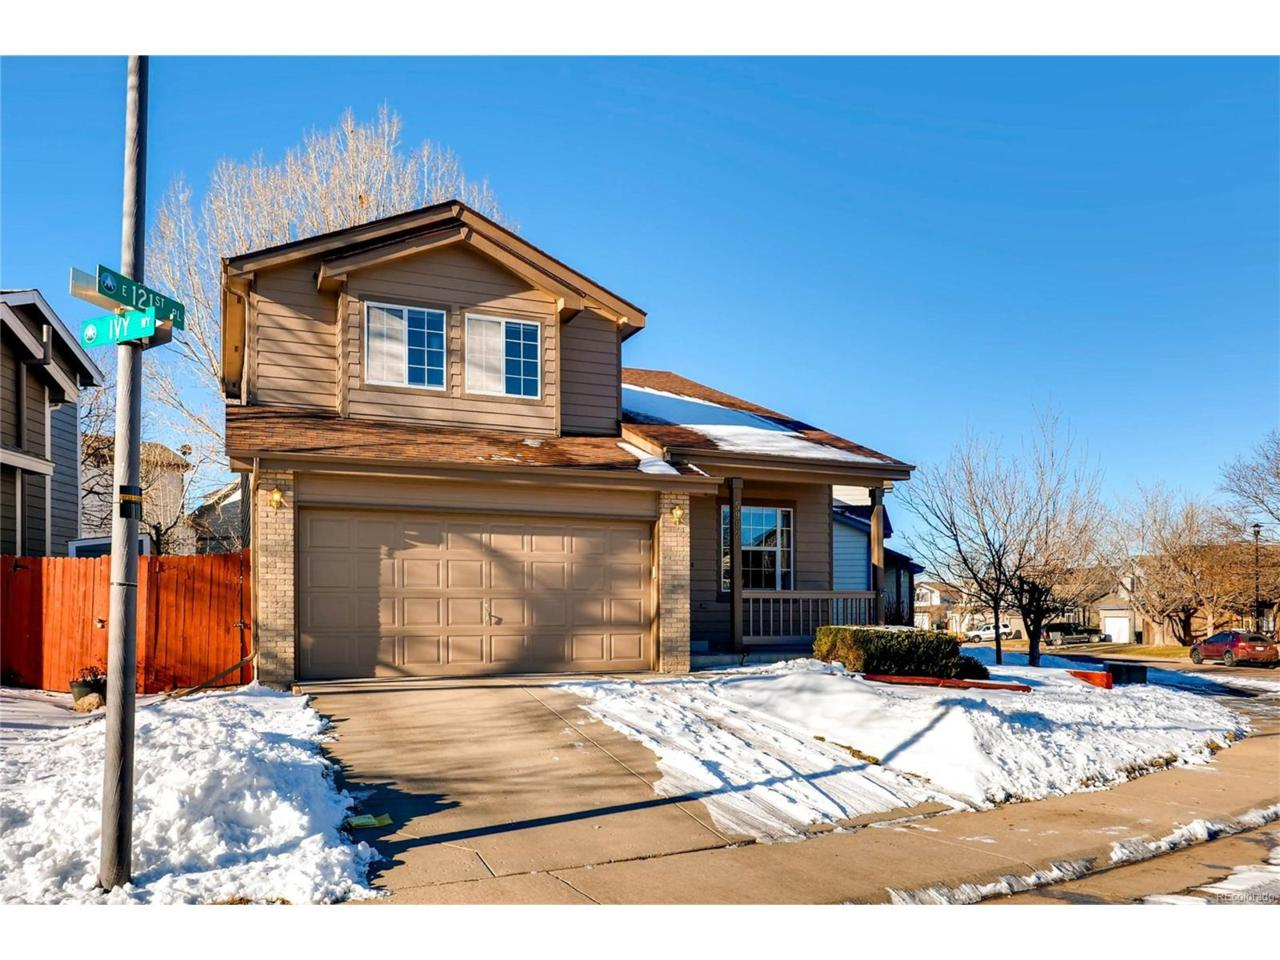 5992 E 121st Place, Brighton, CO 80602 (#6029068) :: The Peak Properties Group